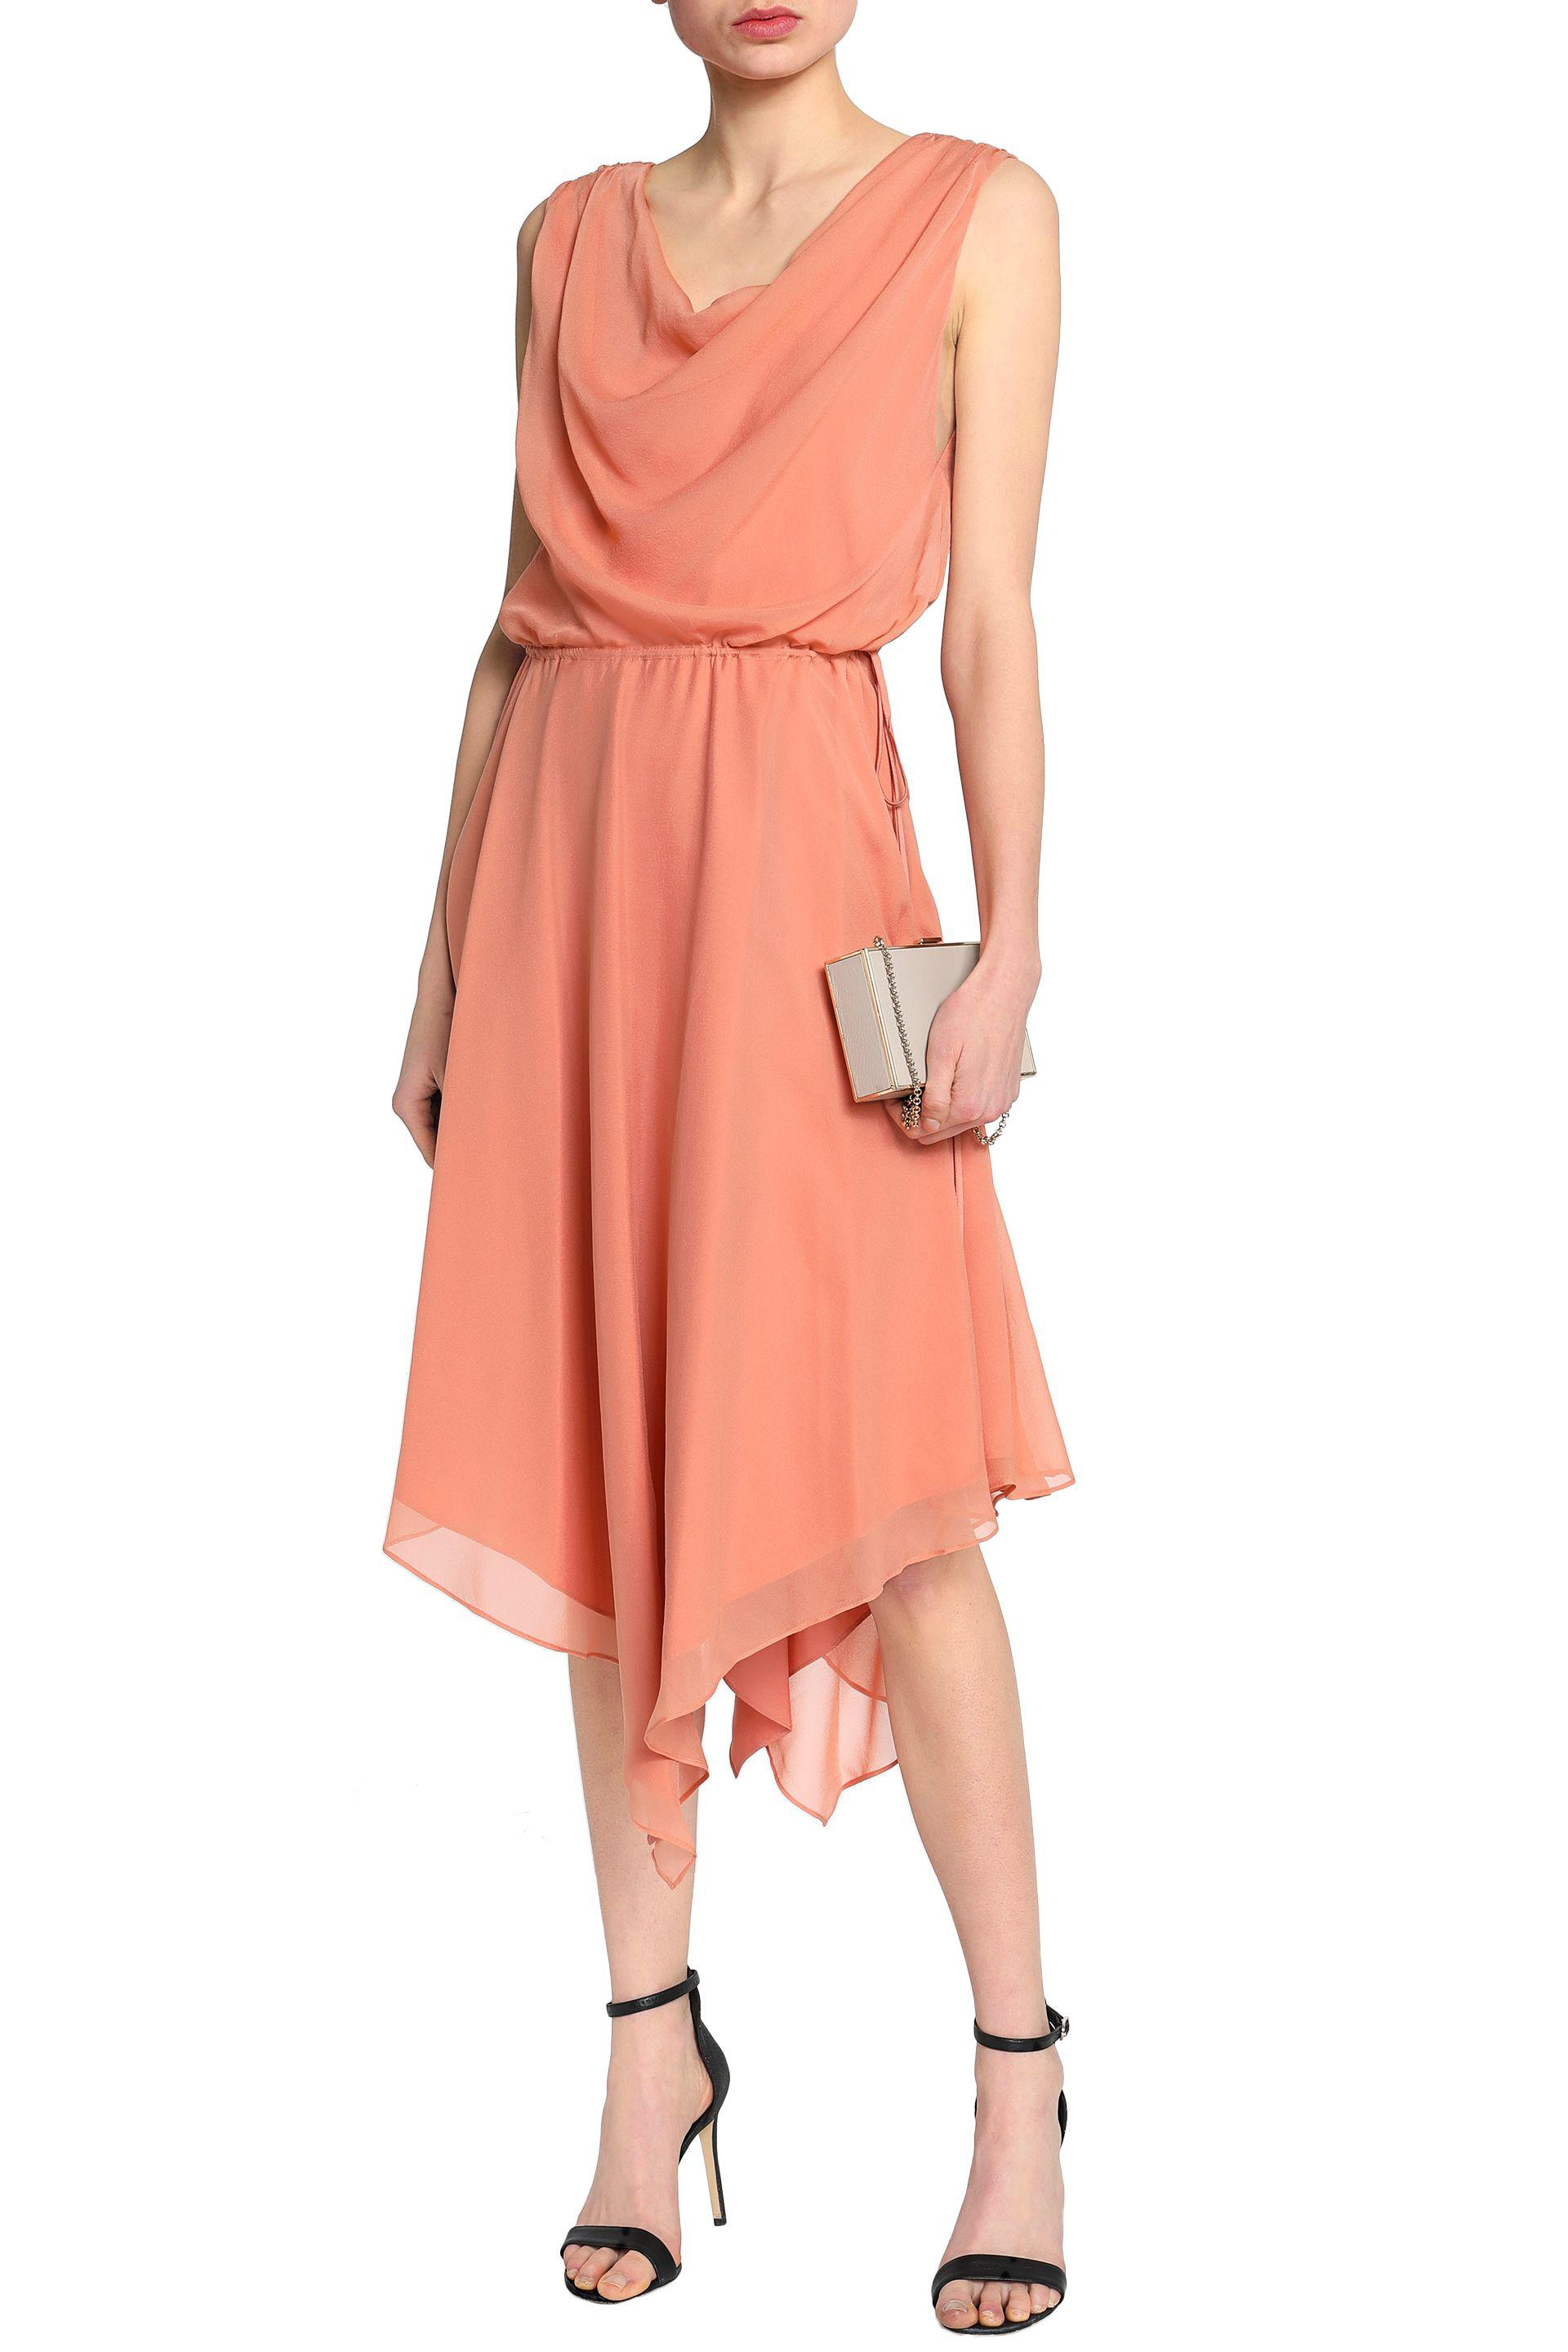 Haute Hippie Woman Draped Silk Crepe De Chine Dress Pastel Orange Size 10 Haute Hippie g2xLFO7